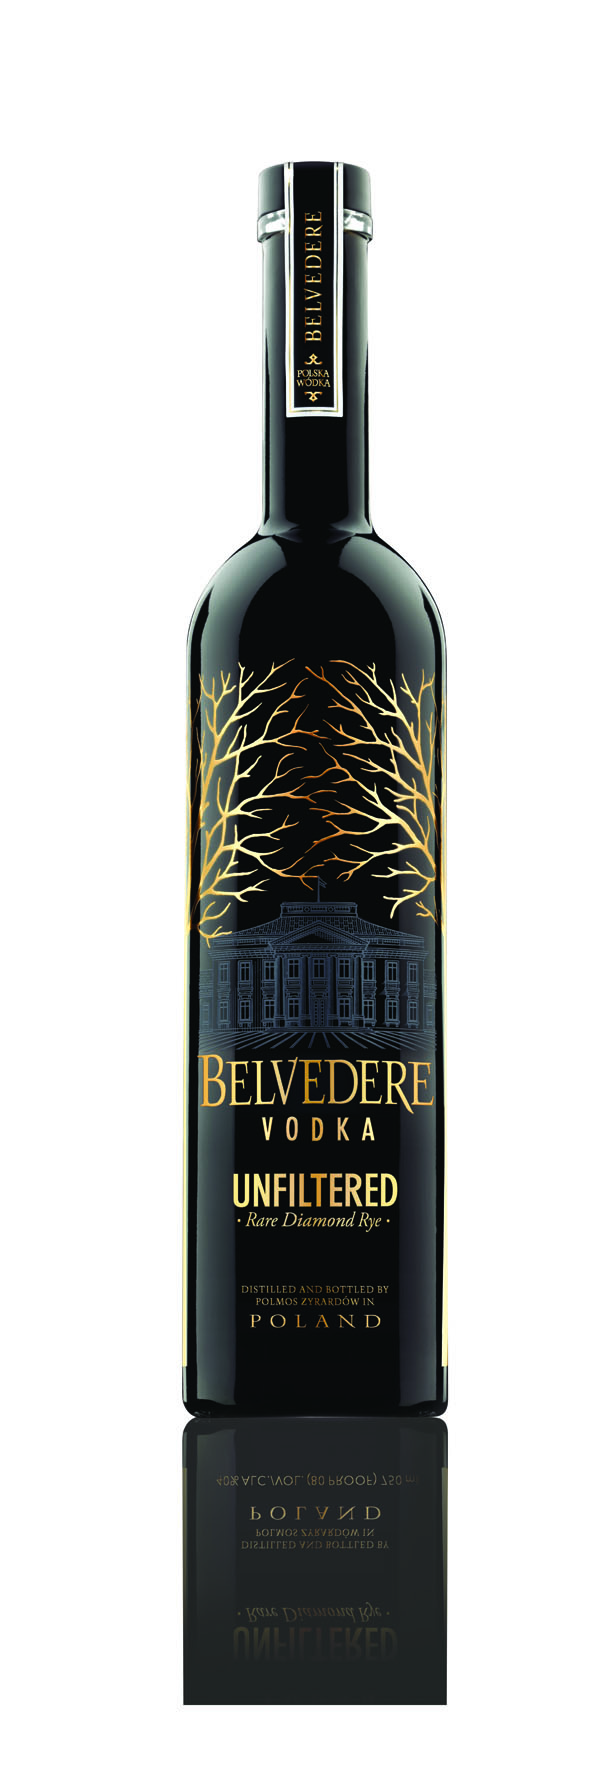 BELVEDERE - Vodka Unfiltred - 50€